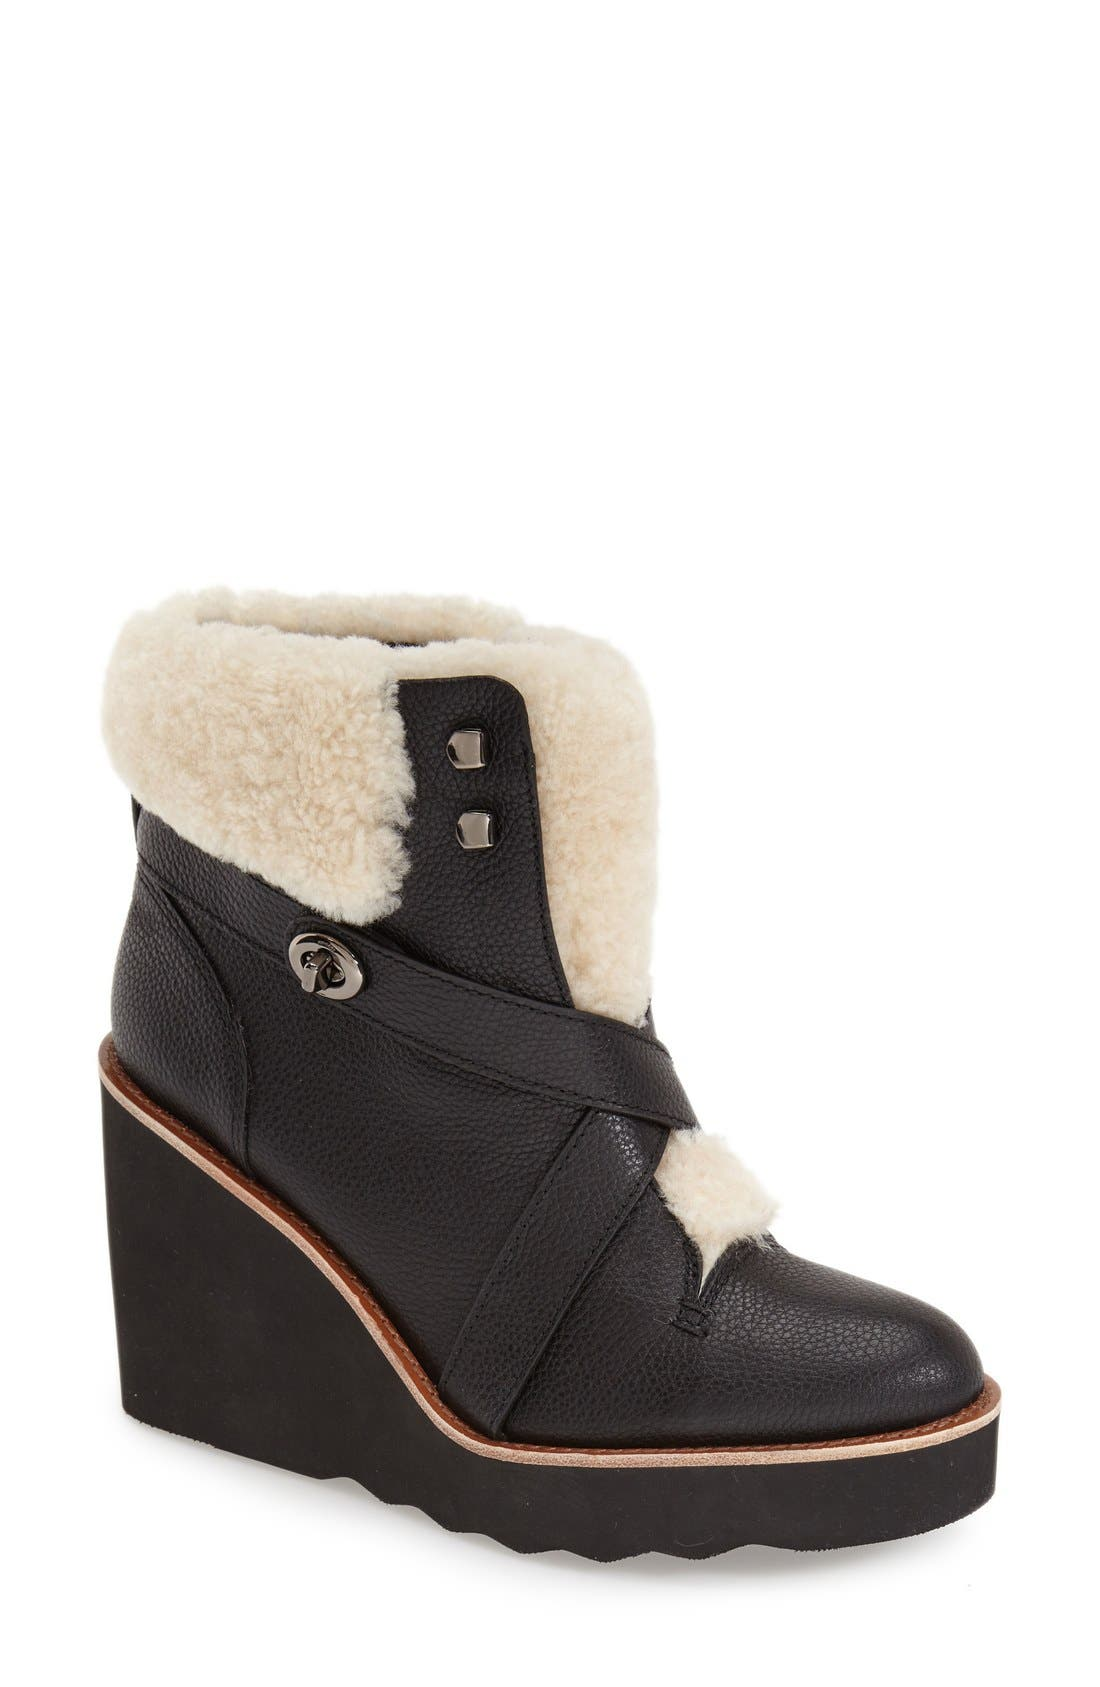 'Kenna' Wedge Bootie, Main, color, 001